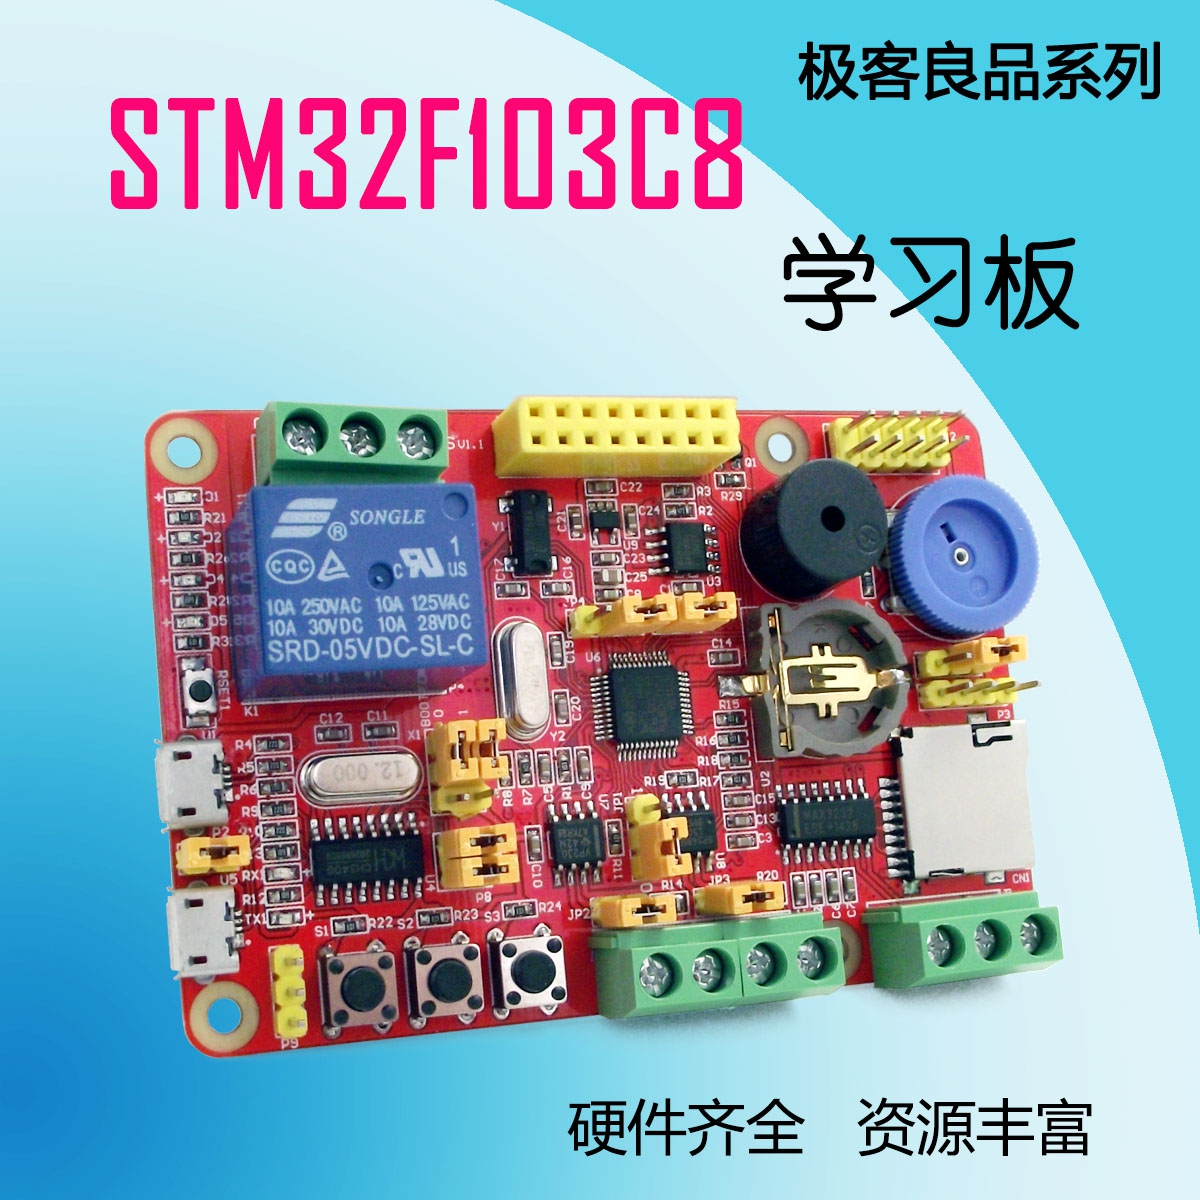 STM32F103C8T6 core board learning board Assessment Board entry artifact STM32 stm32f103c8t6 core board learning board assessment board entry artifact stm32